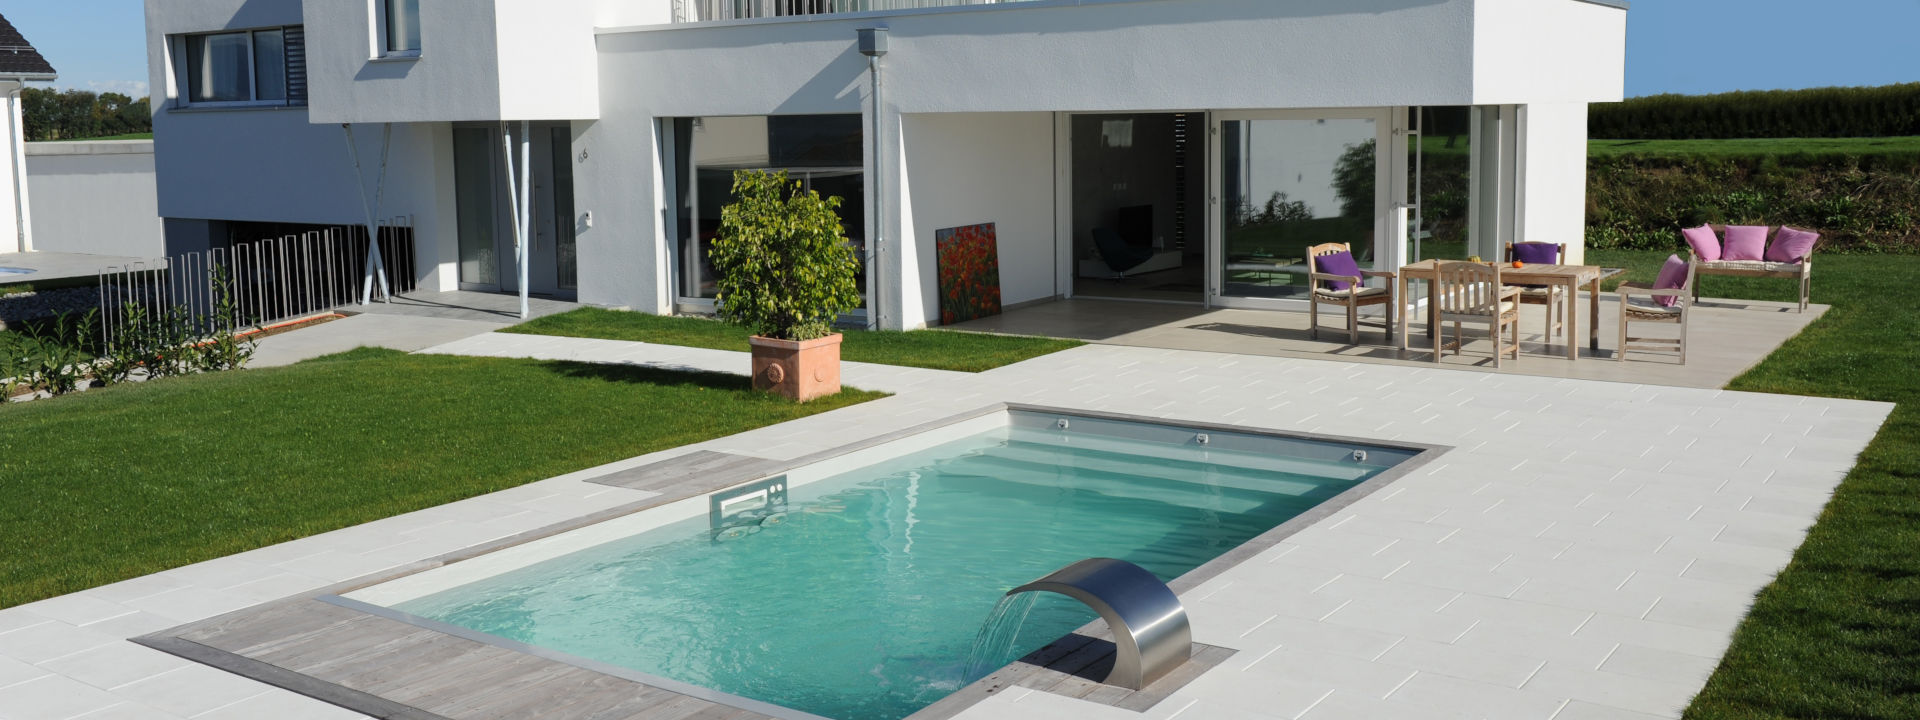 piscine rectangulaire pour maison design